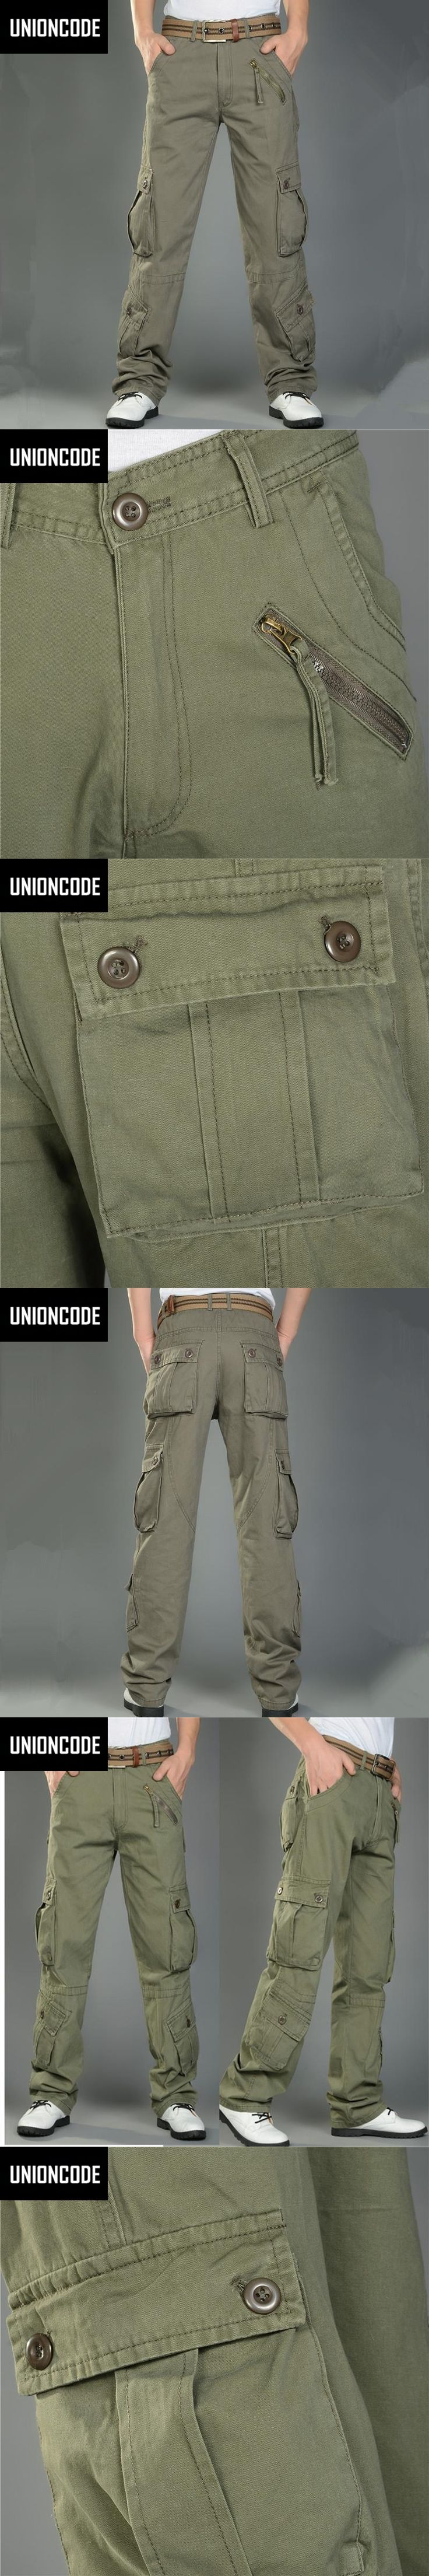 Cargo Pants Midweight Regular Direct Selling Hot Sale 2017 Mens Military Cotton Pantalones Hombre Casual Chinos For Men 520